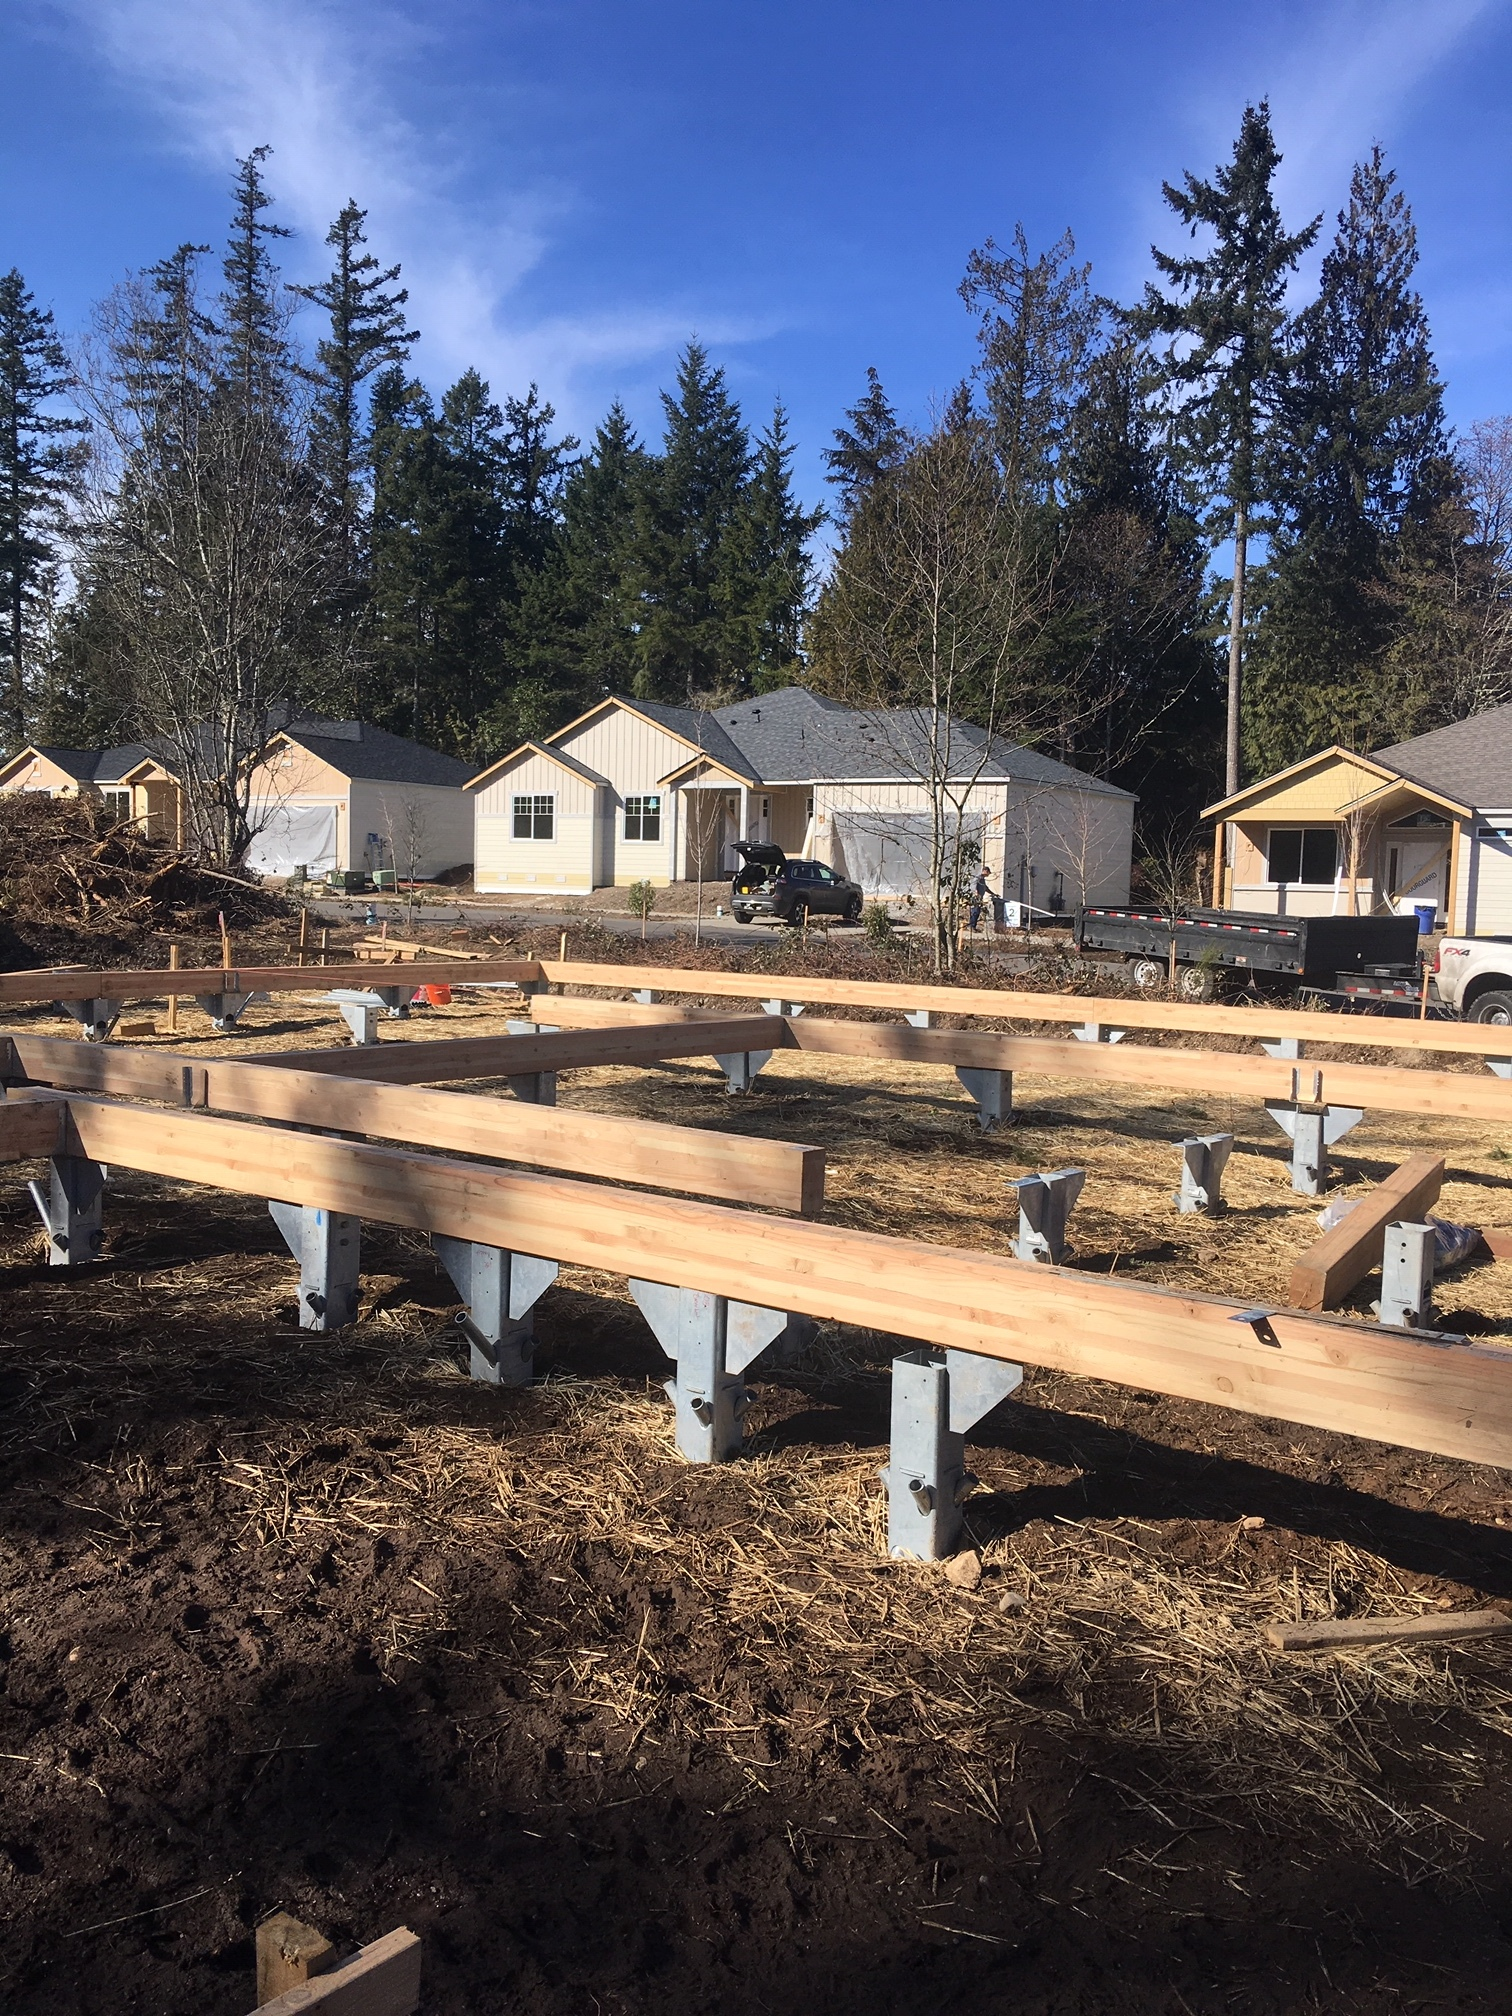 The Foundation Frame is the ideal solution for 1 and 2 story homes